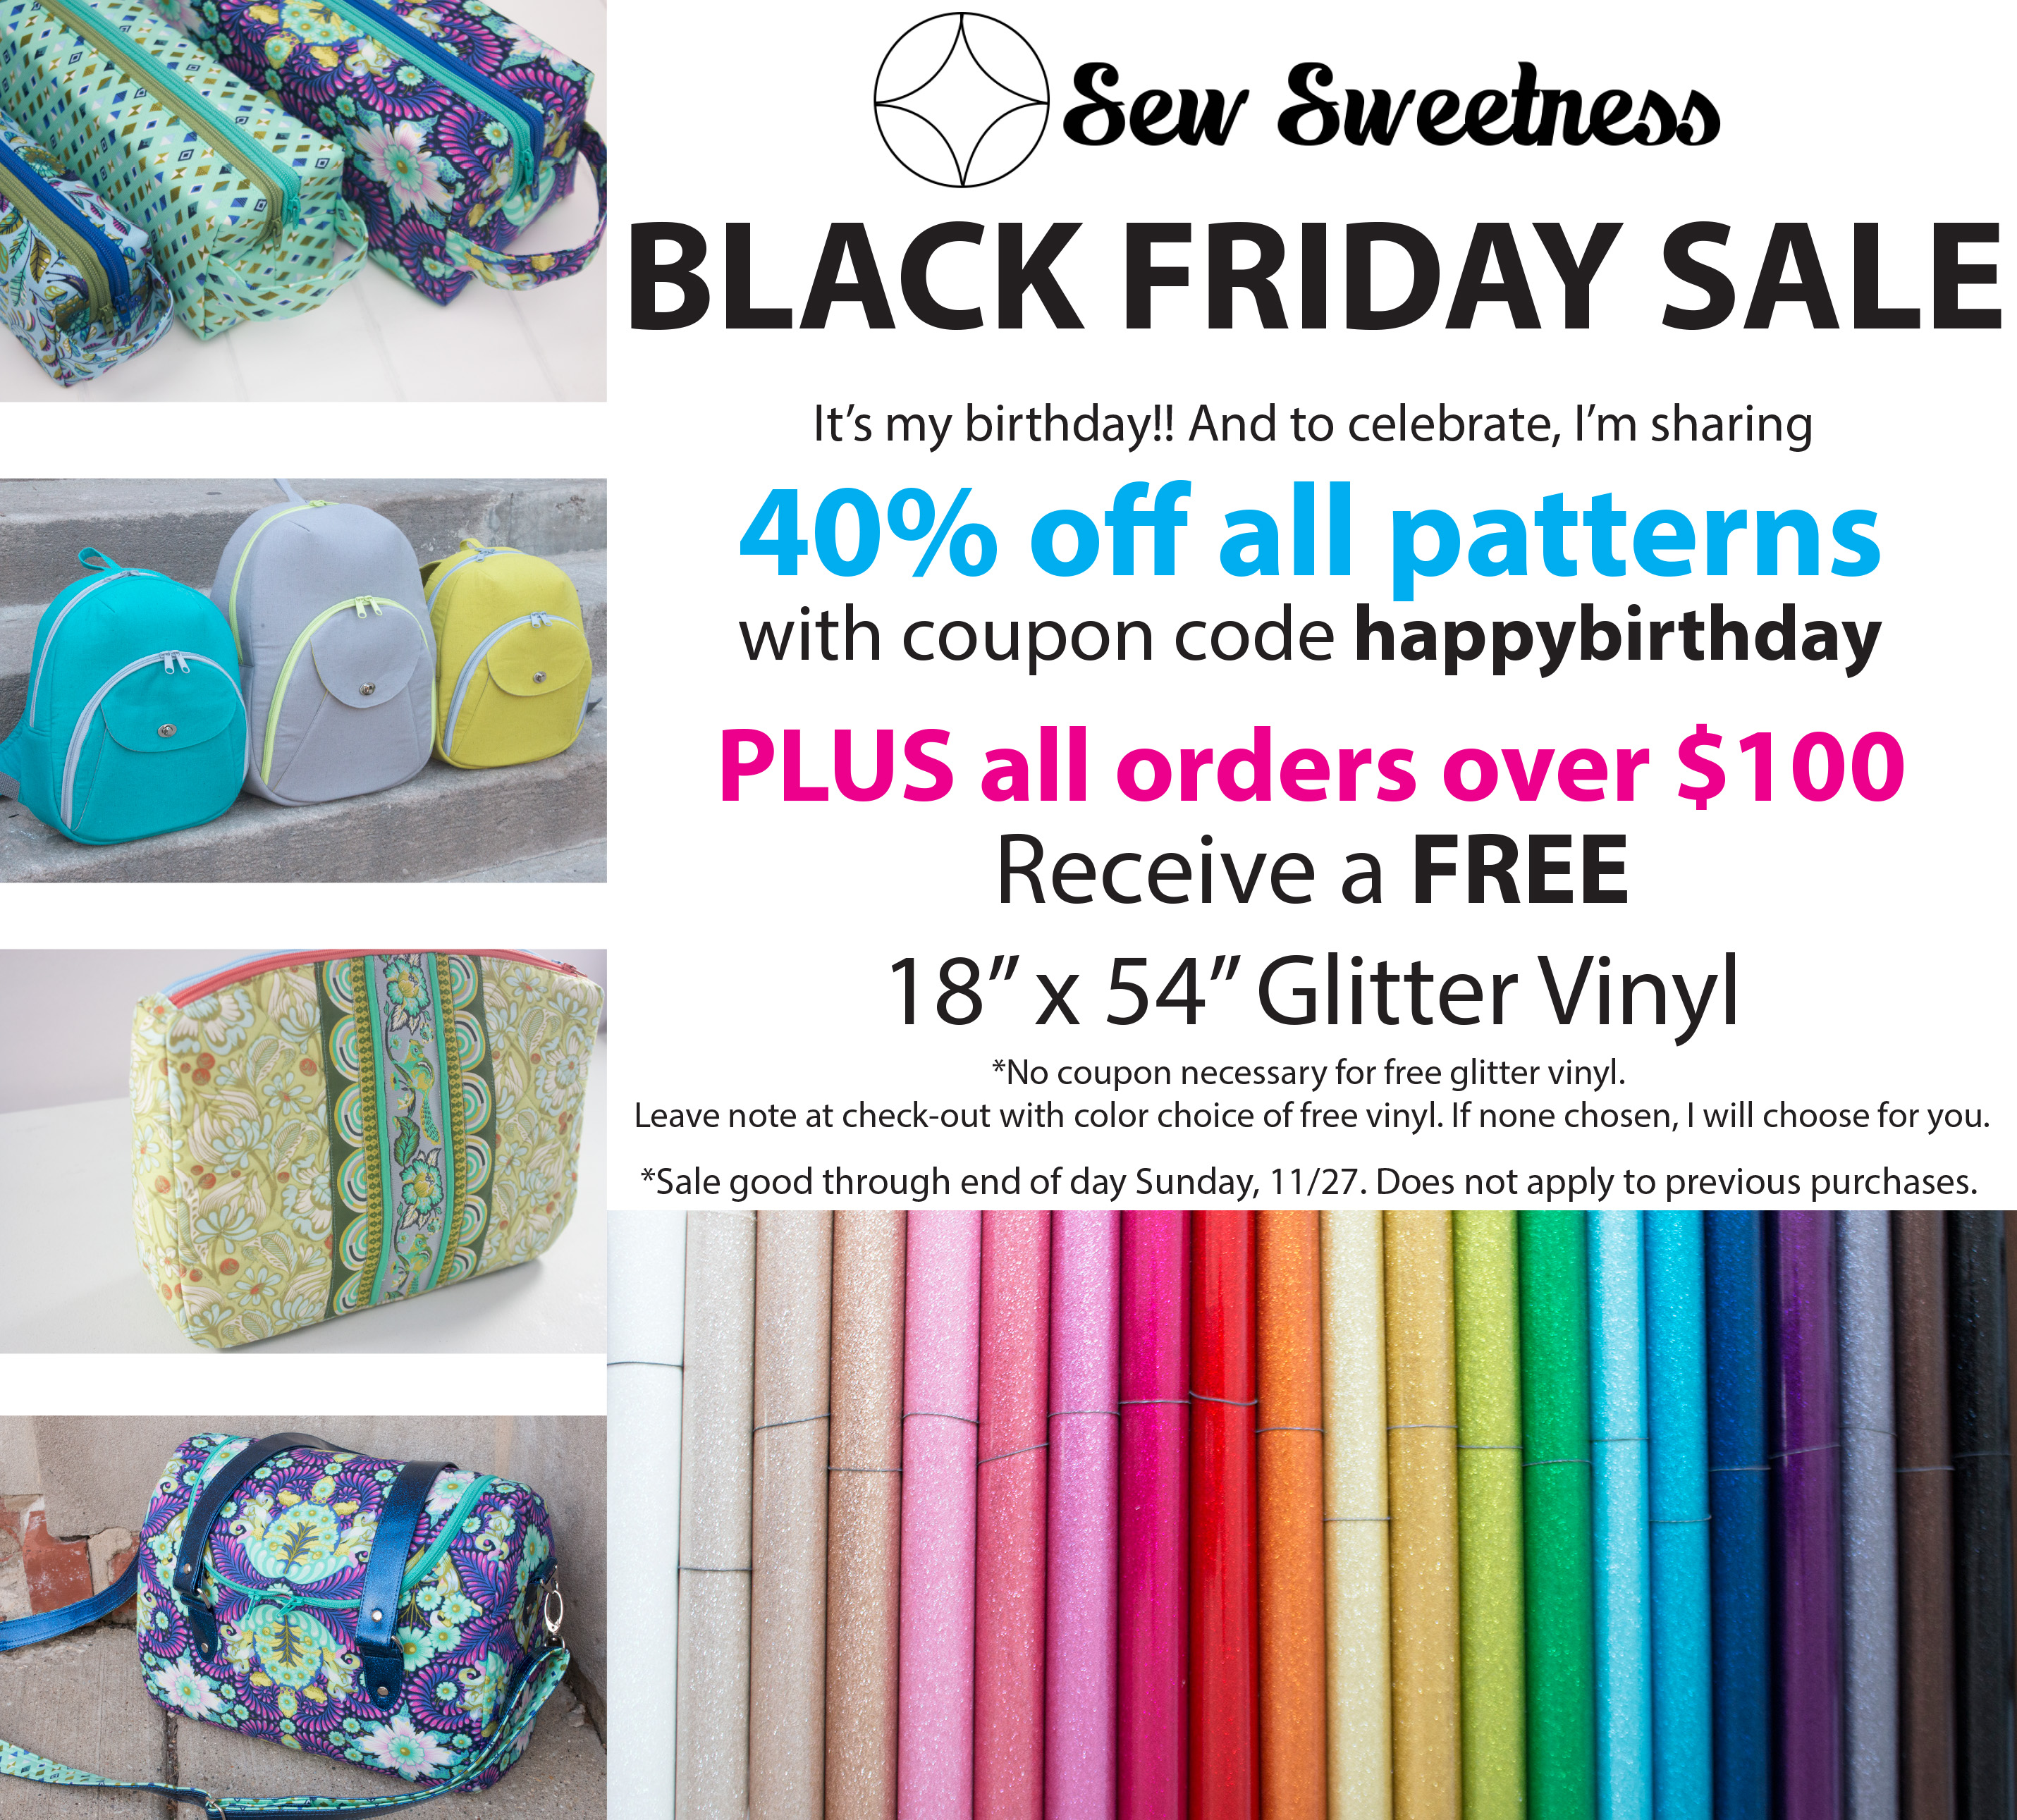 Black Friday Sales Sew Sweetness